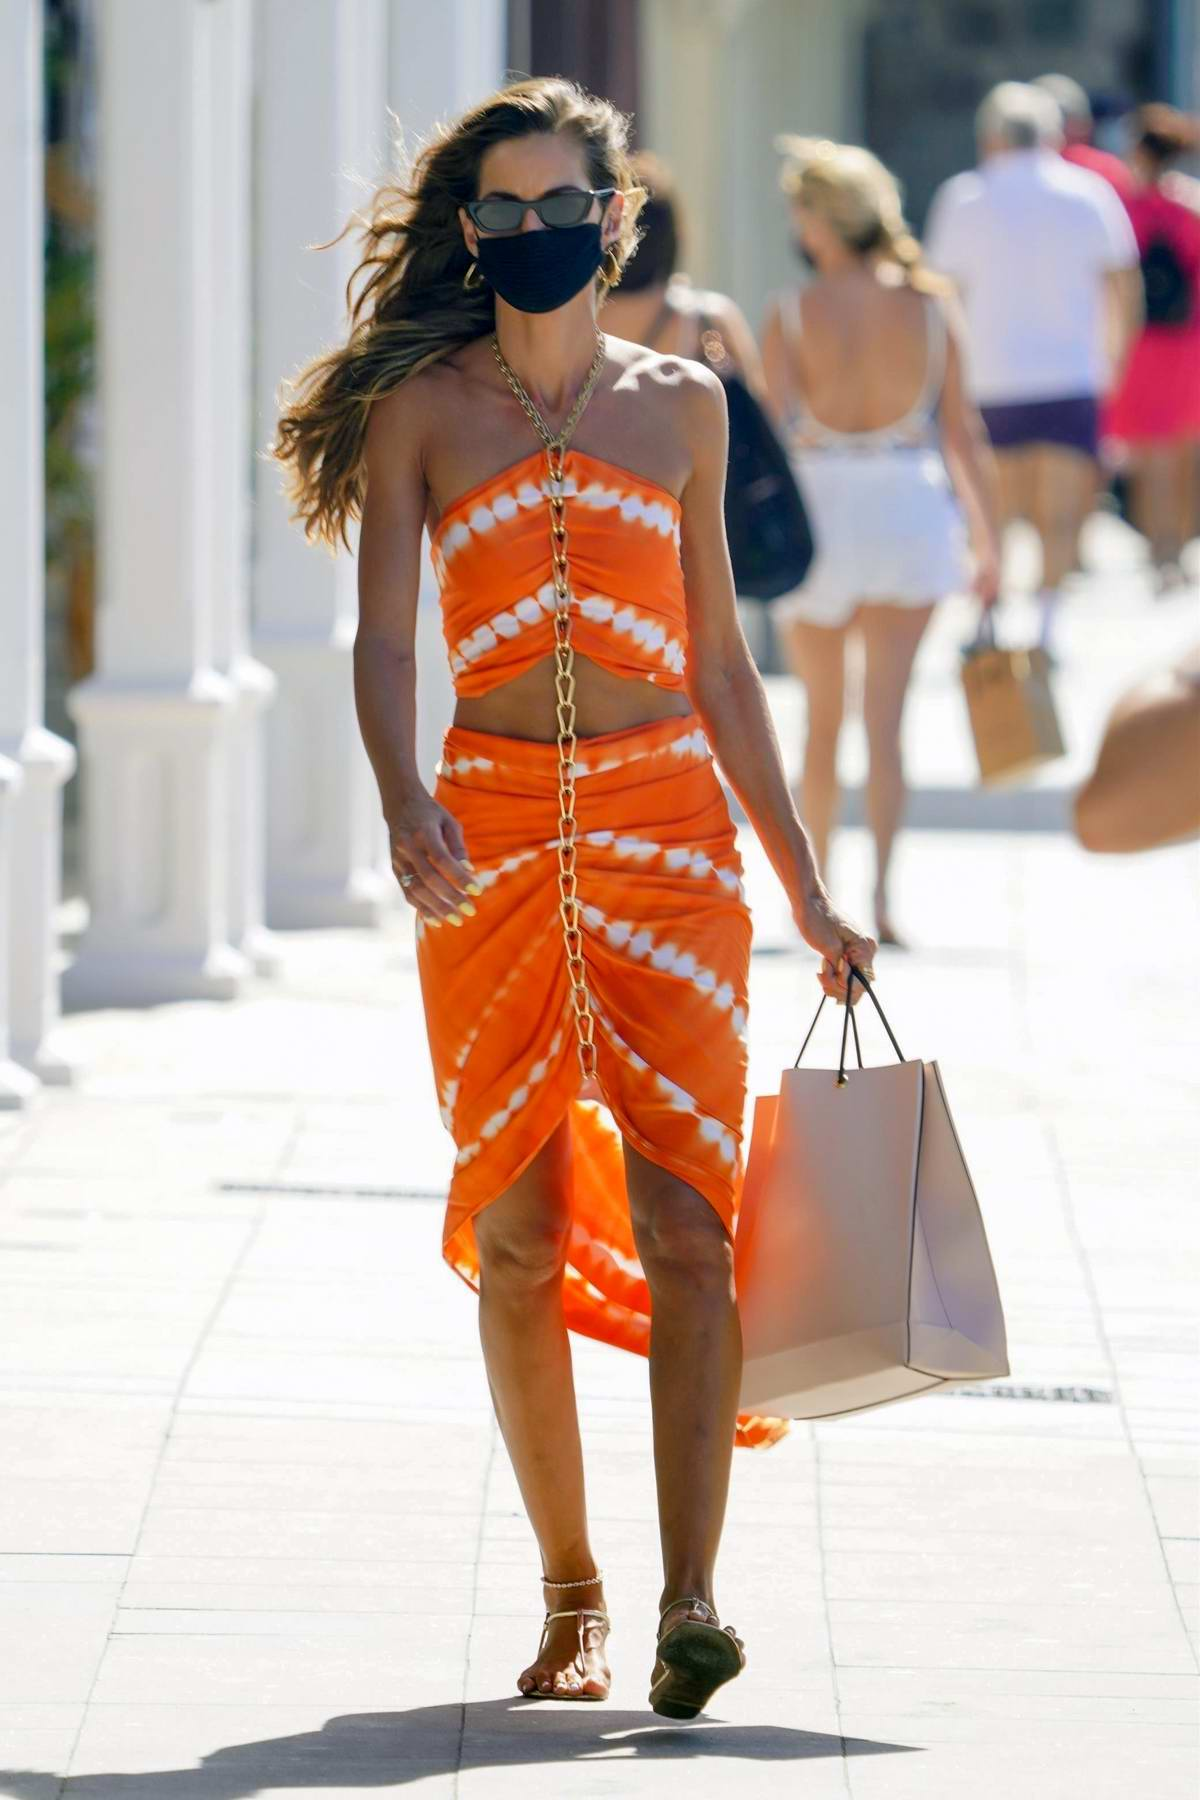 Izabel Goulart looks amazing in an orange outfit while out and about before getting onto a boat in St Barth, France